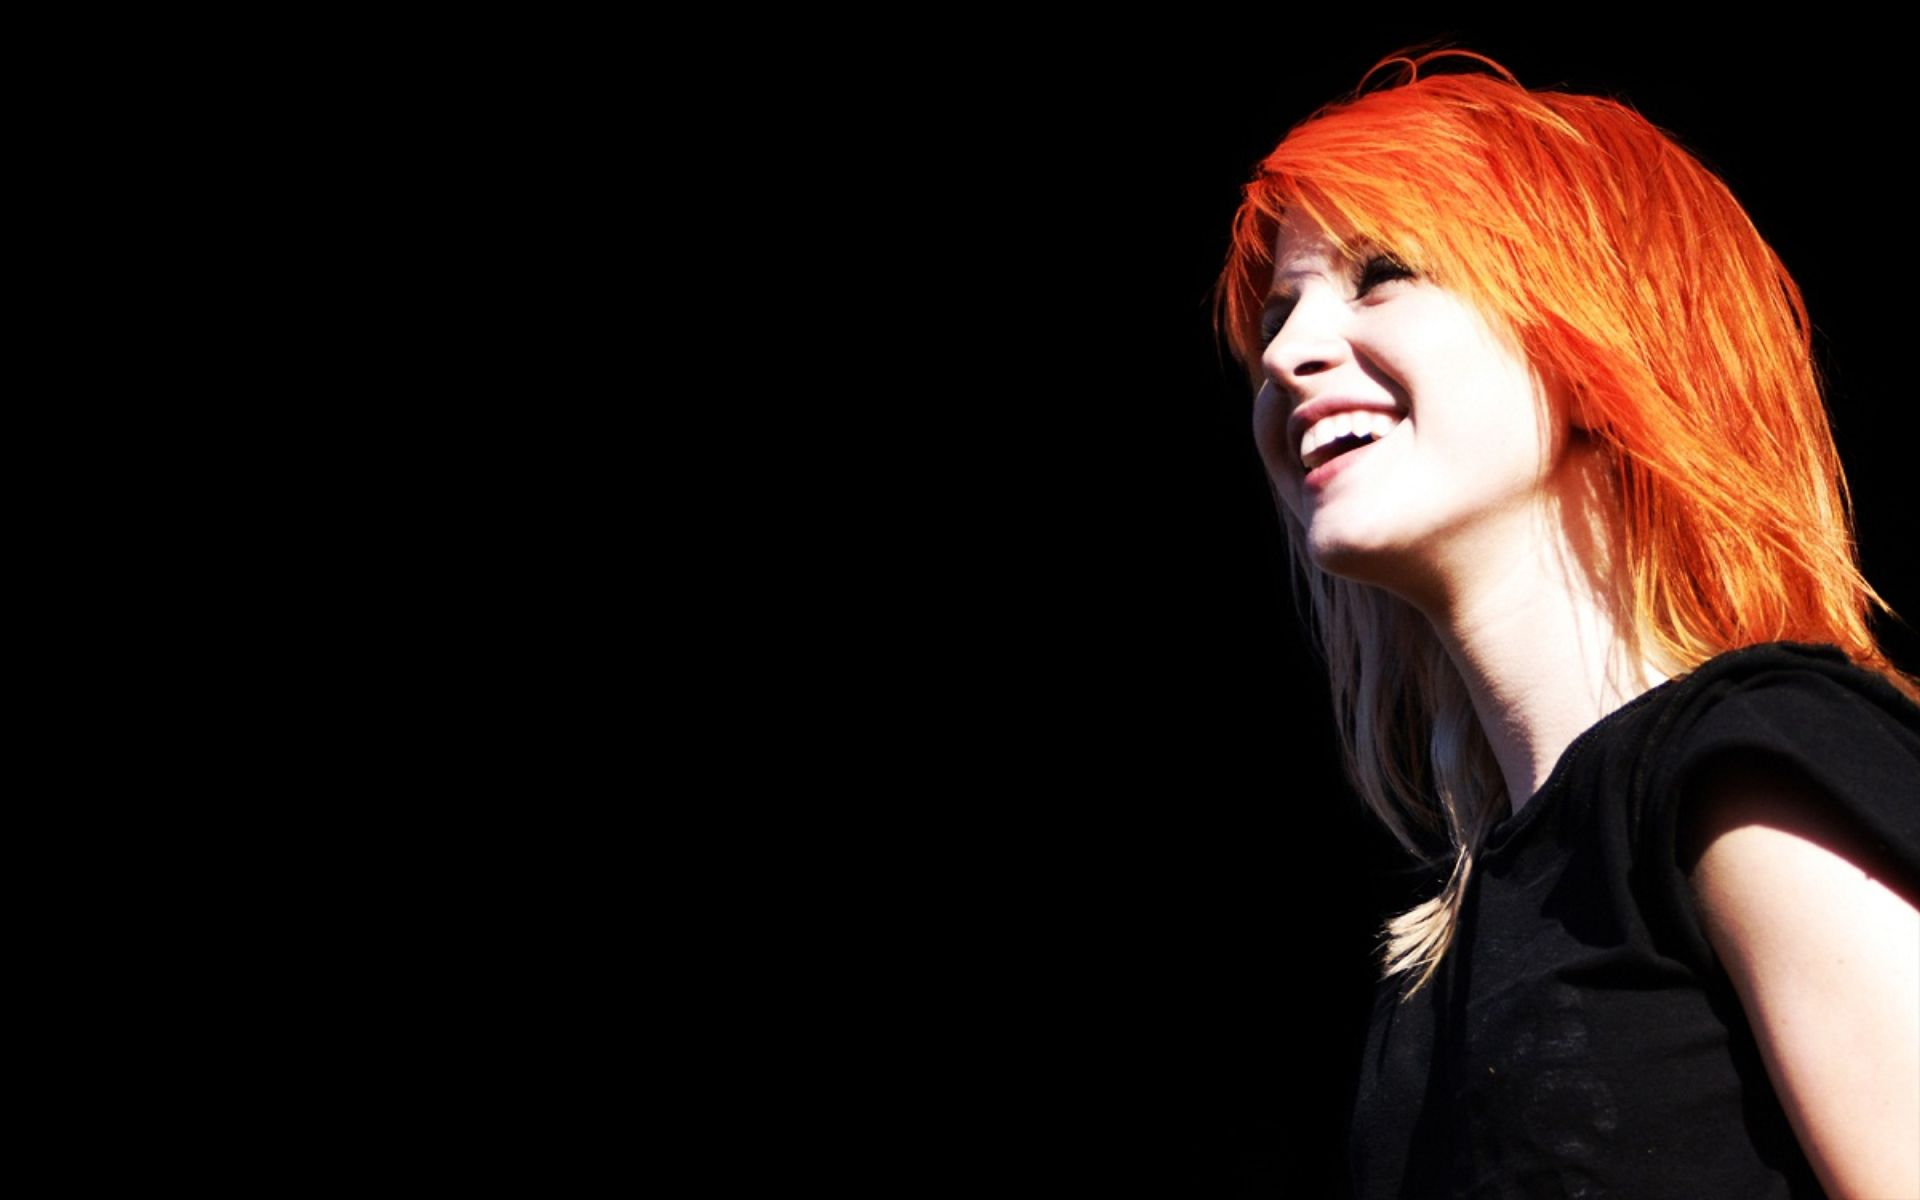 cute hayley williams wallpaper 25464